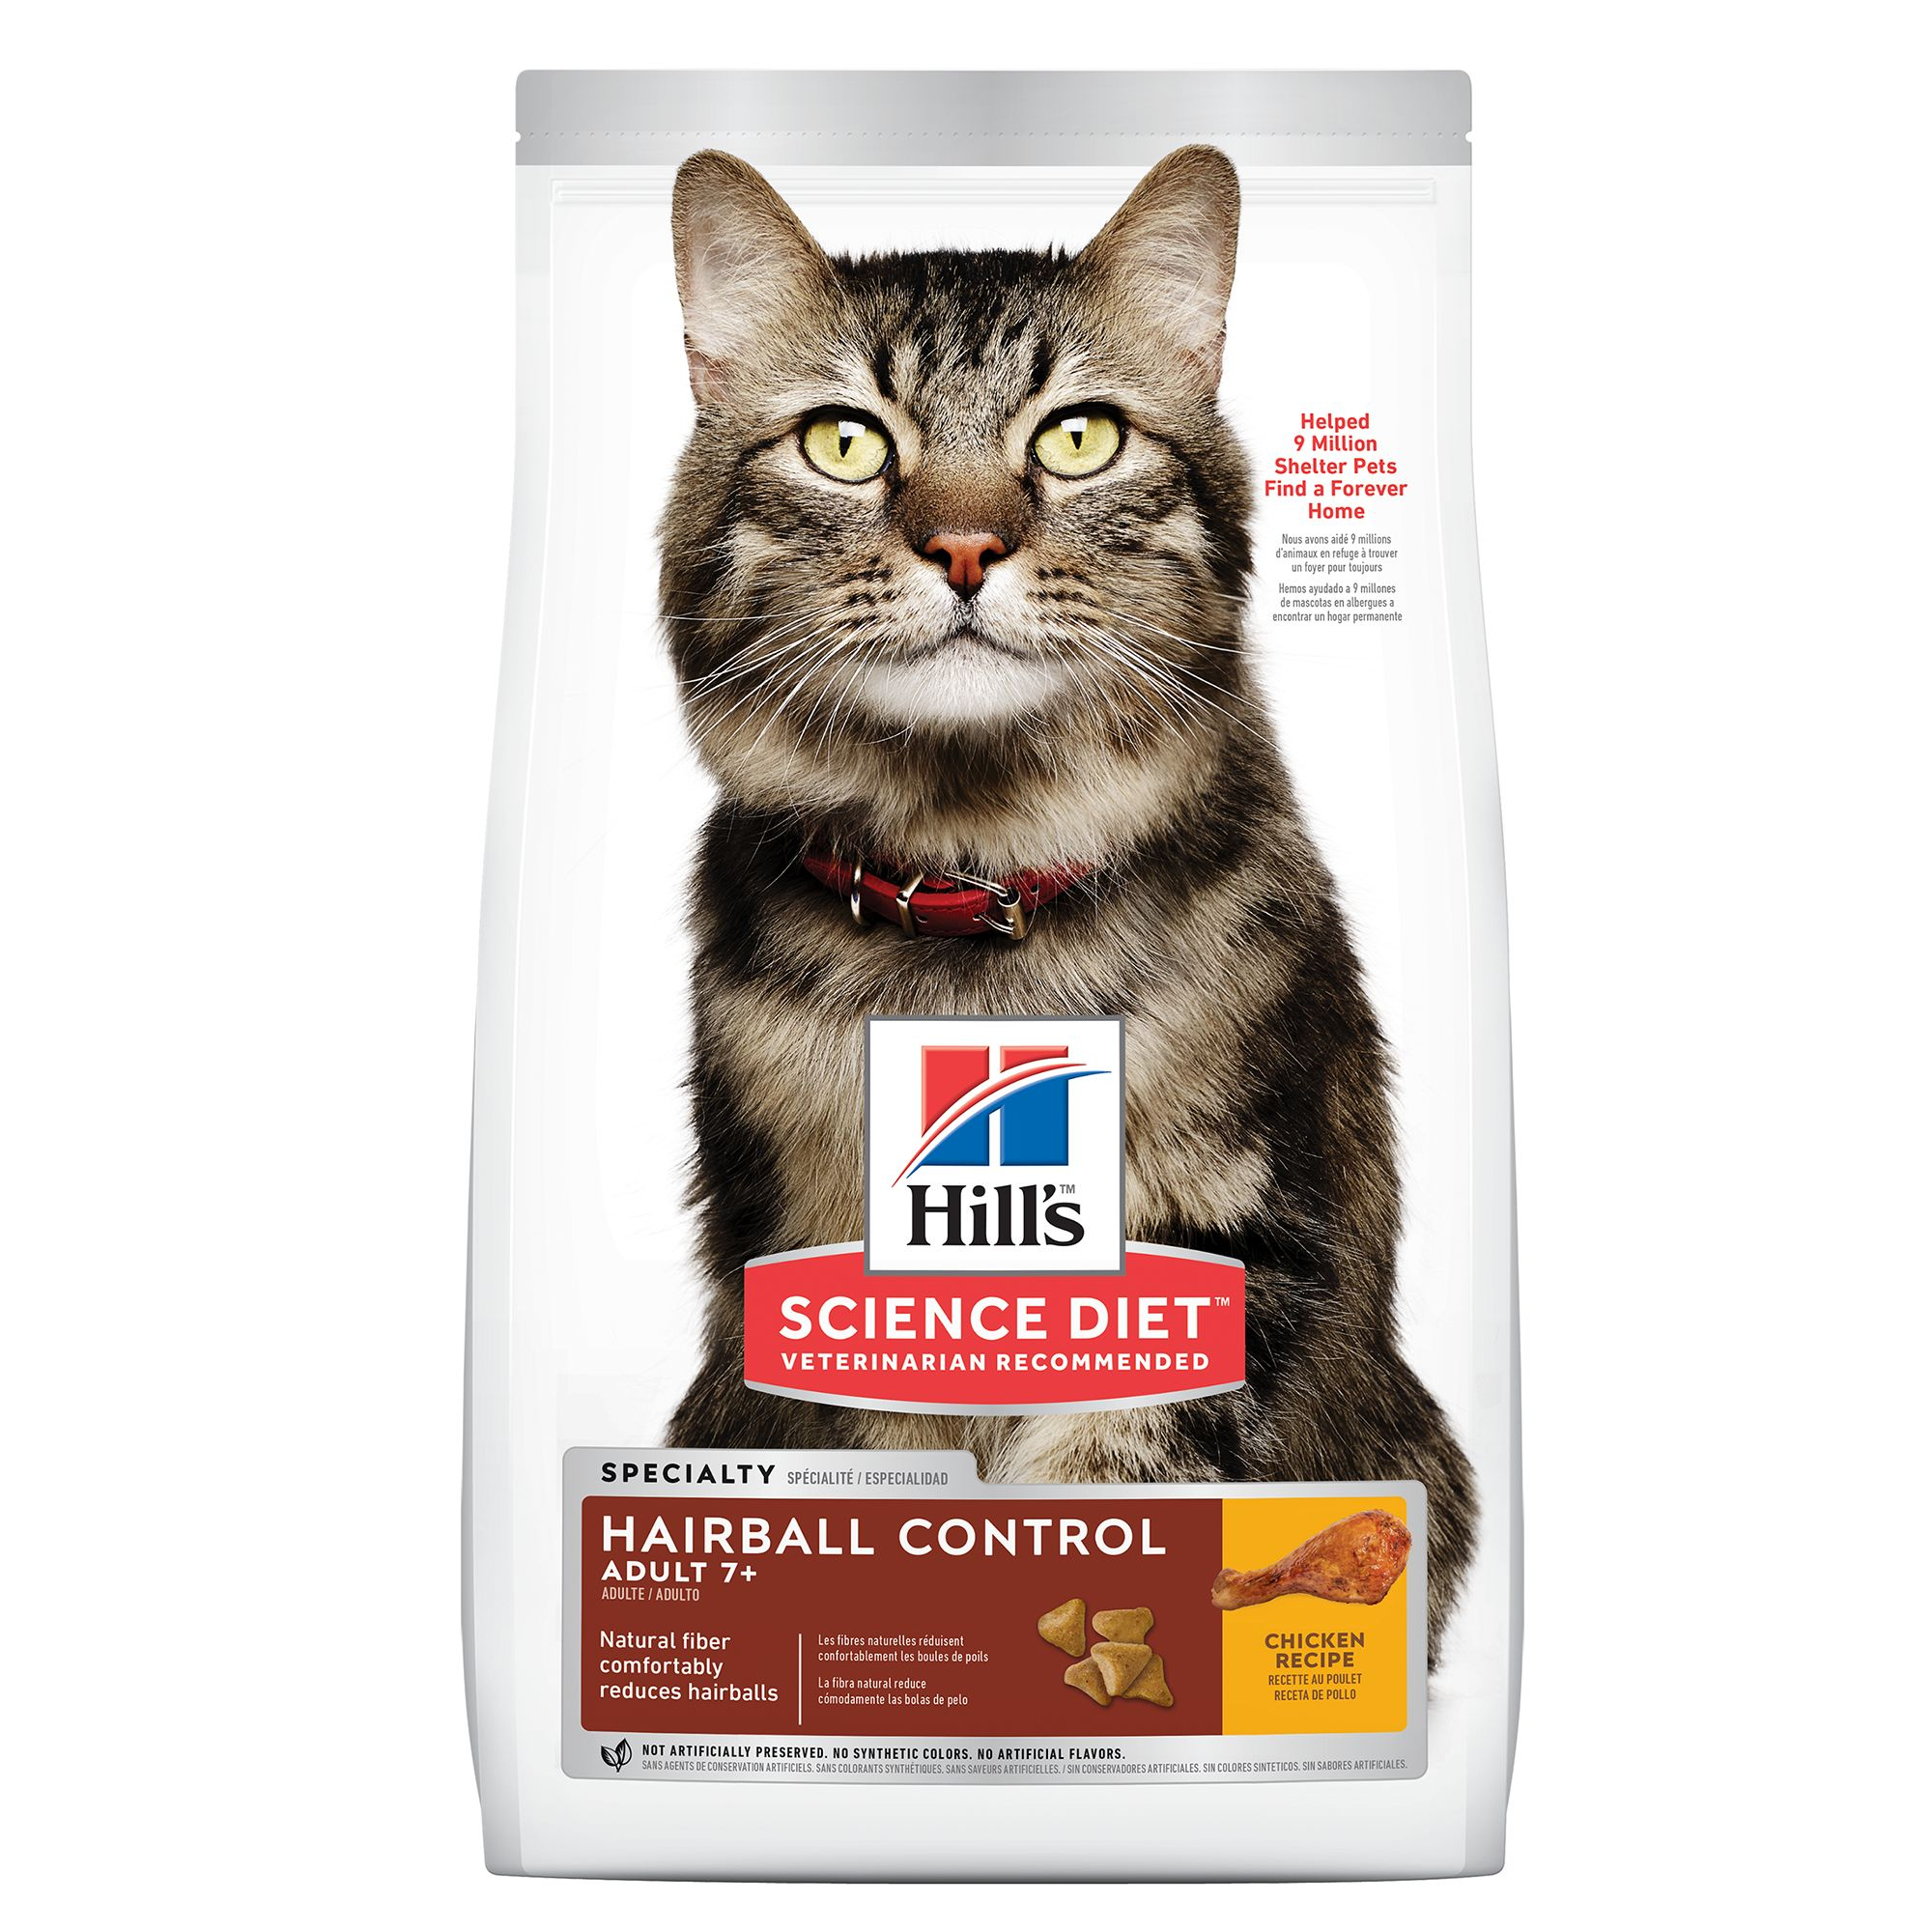 Hill's® Science Diet® Hairball Control Senior Cat Food - Chicken 5002975